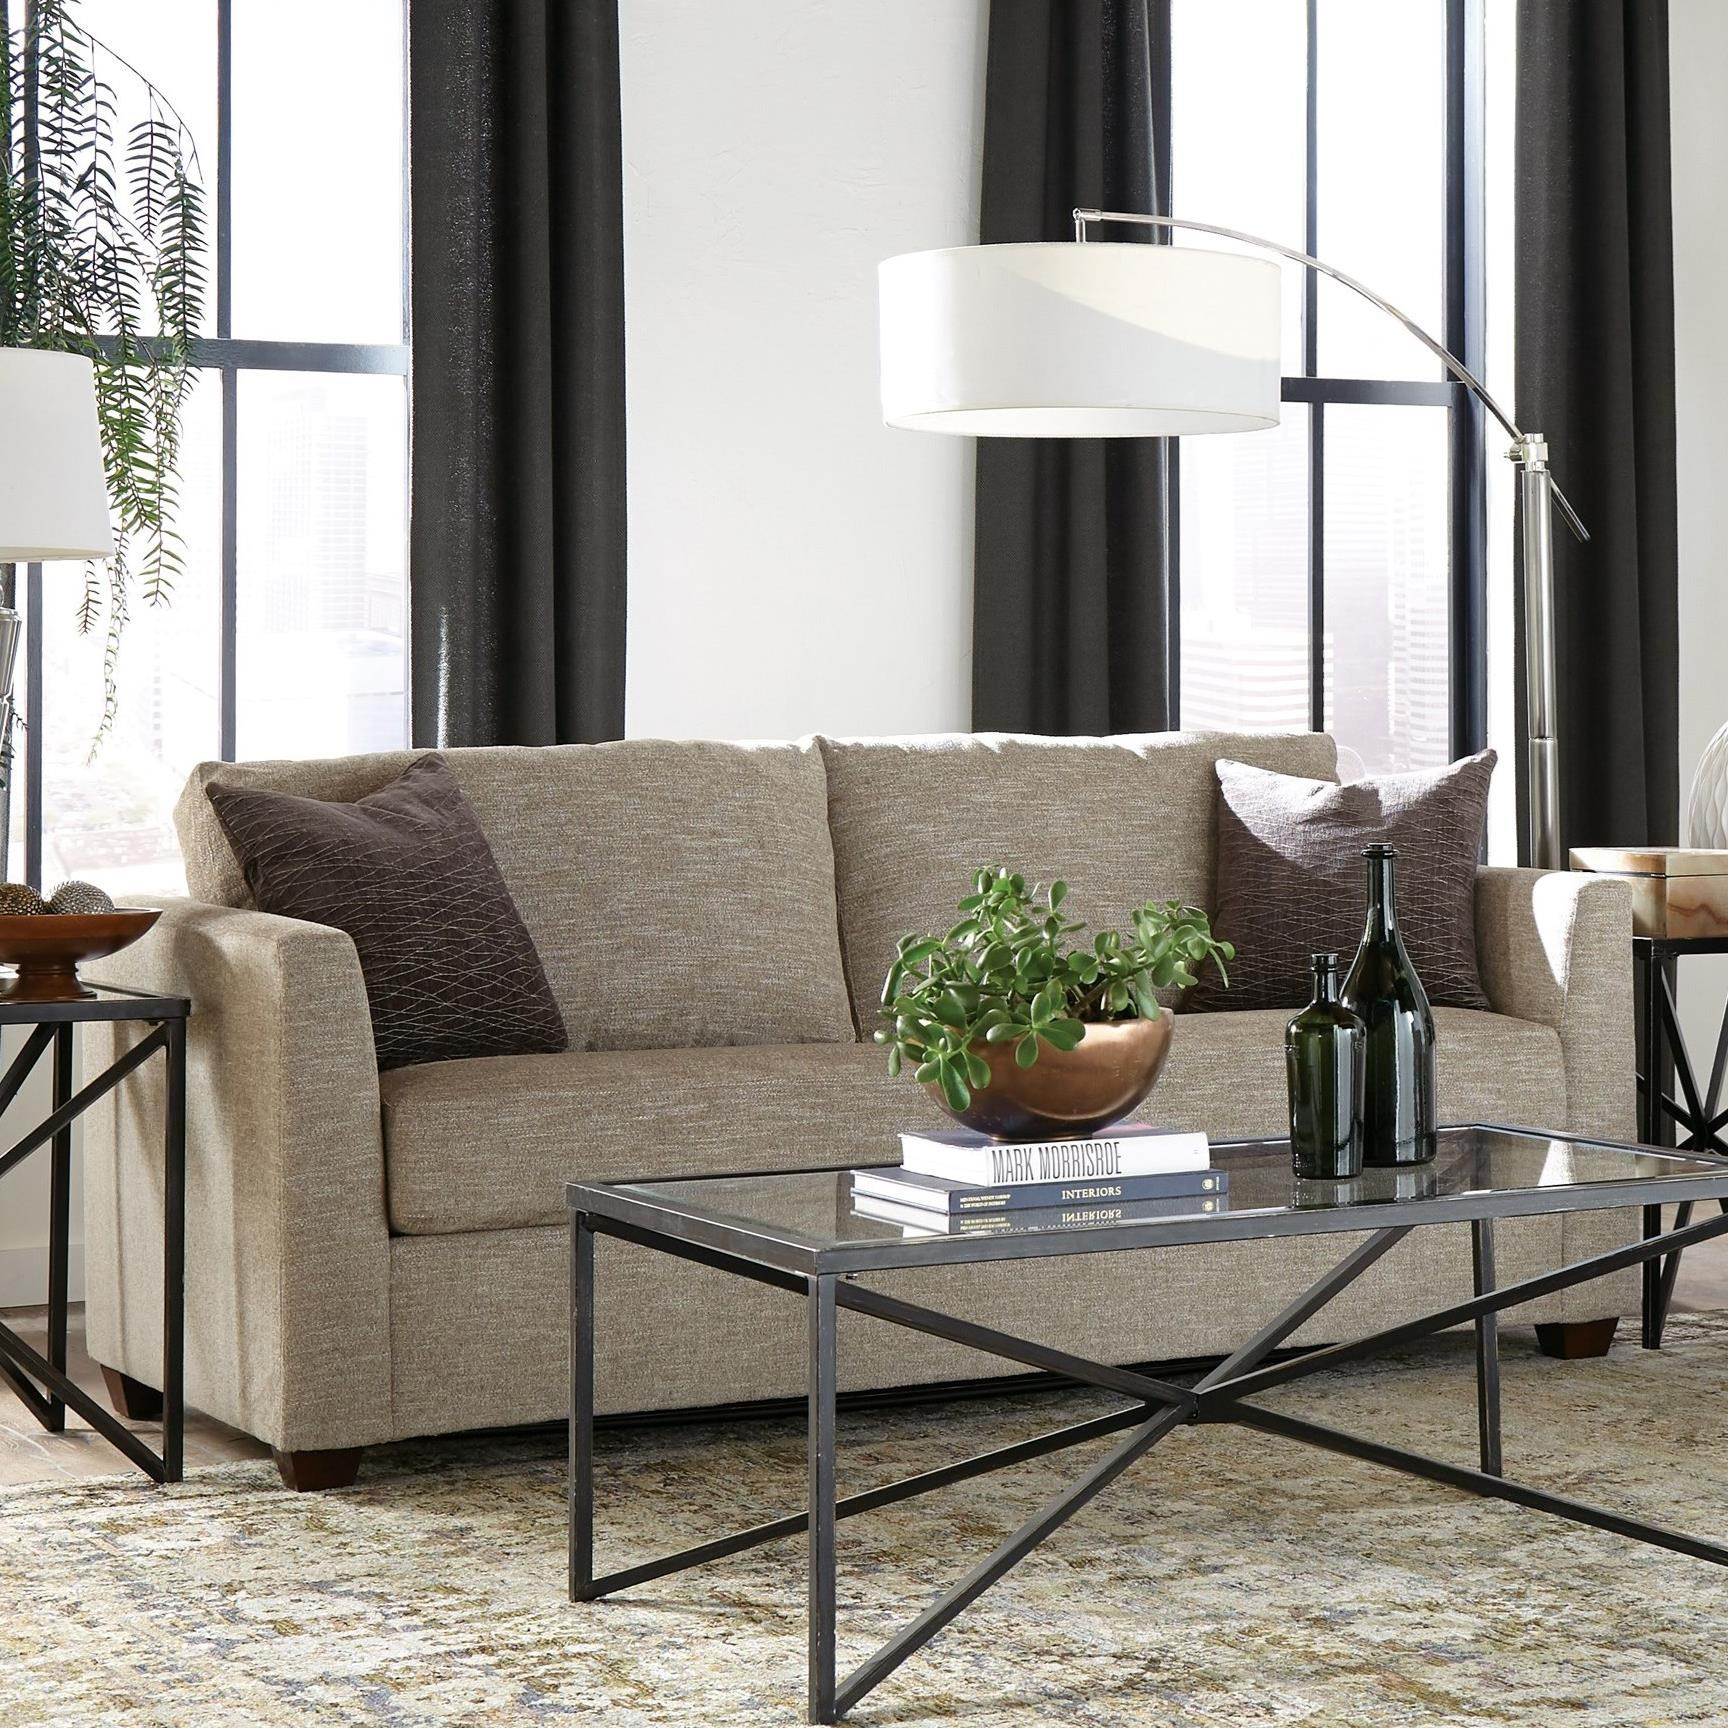 53 Frame Queen Sleeper Sofa by Warehouse M at Pilgrim Furniture City